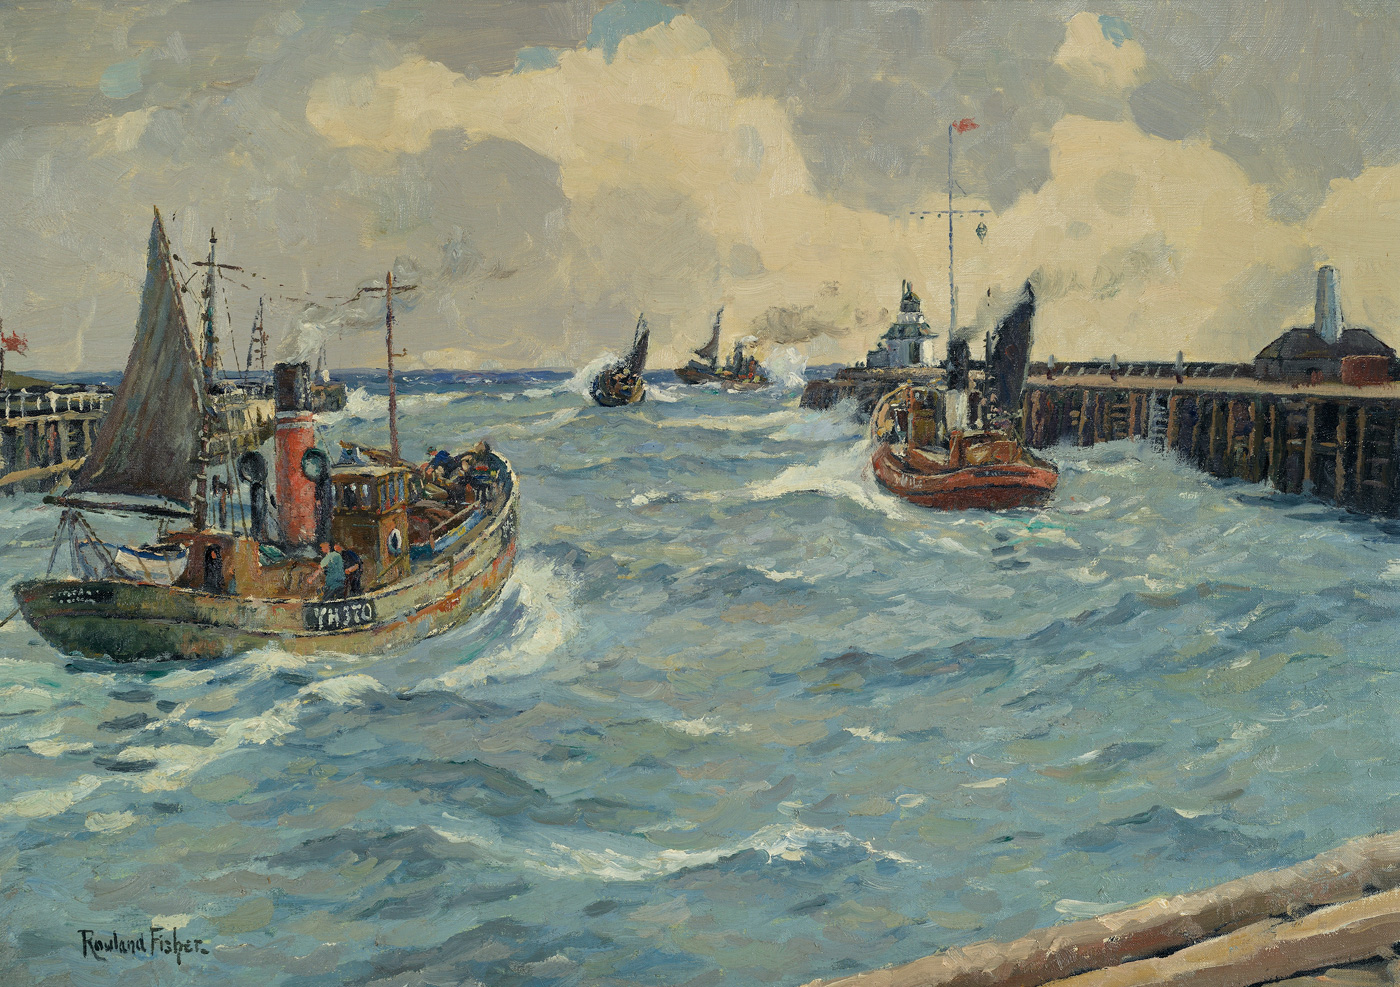 Drifters Leaving Gorleston by  Rowland Fisher RA RMSA ROI 1885-1969